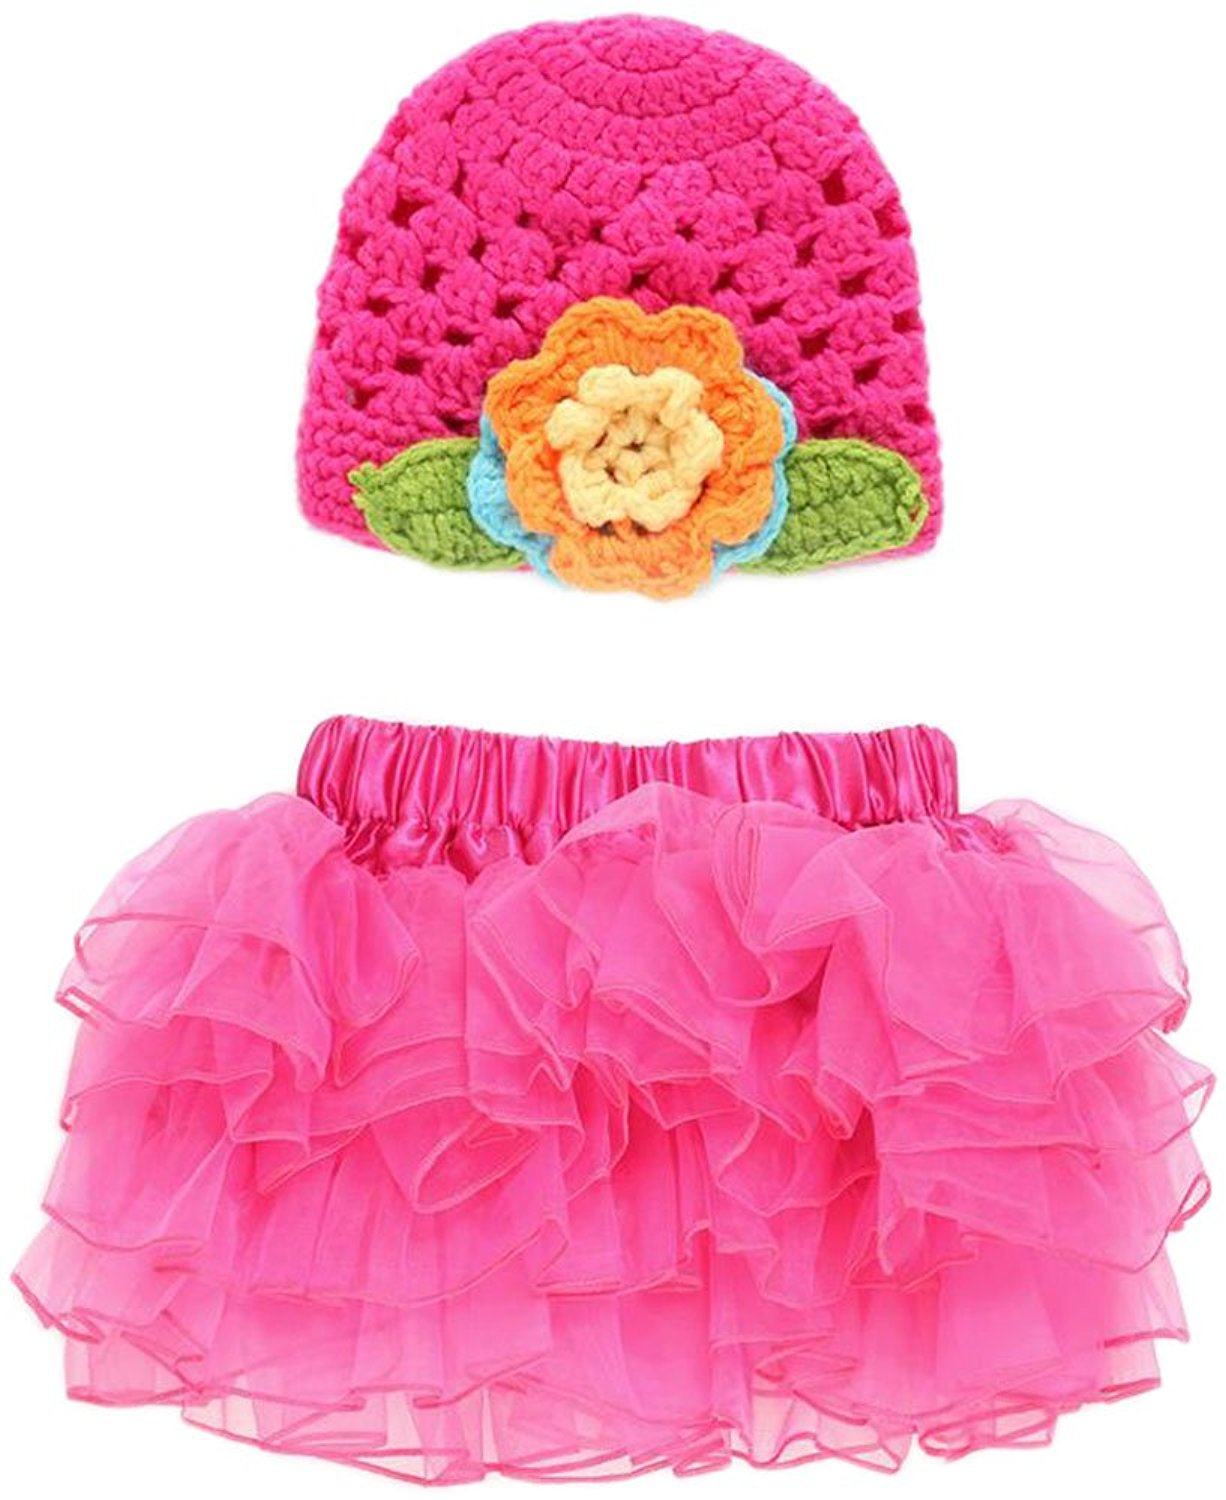 9d5237fc552 Get Quotations · Bettyhome Baby Girls Photo Prop Crochet Knit Hat with Tutu  Skirt Costume Outfit